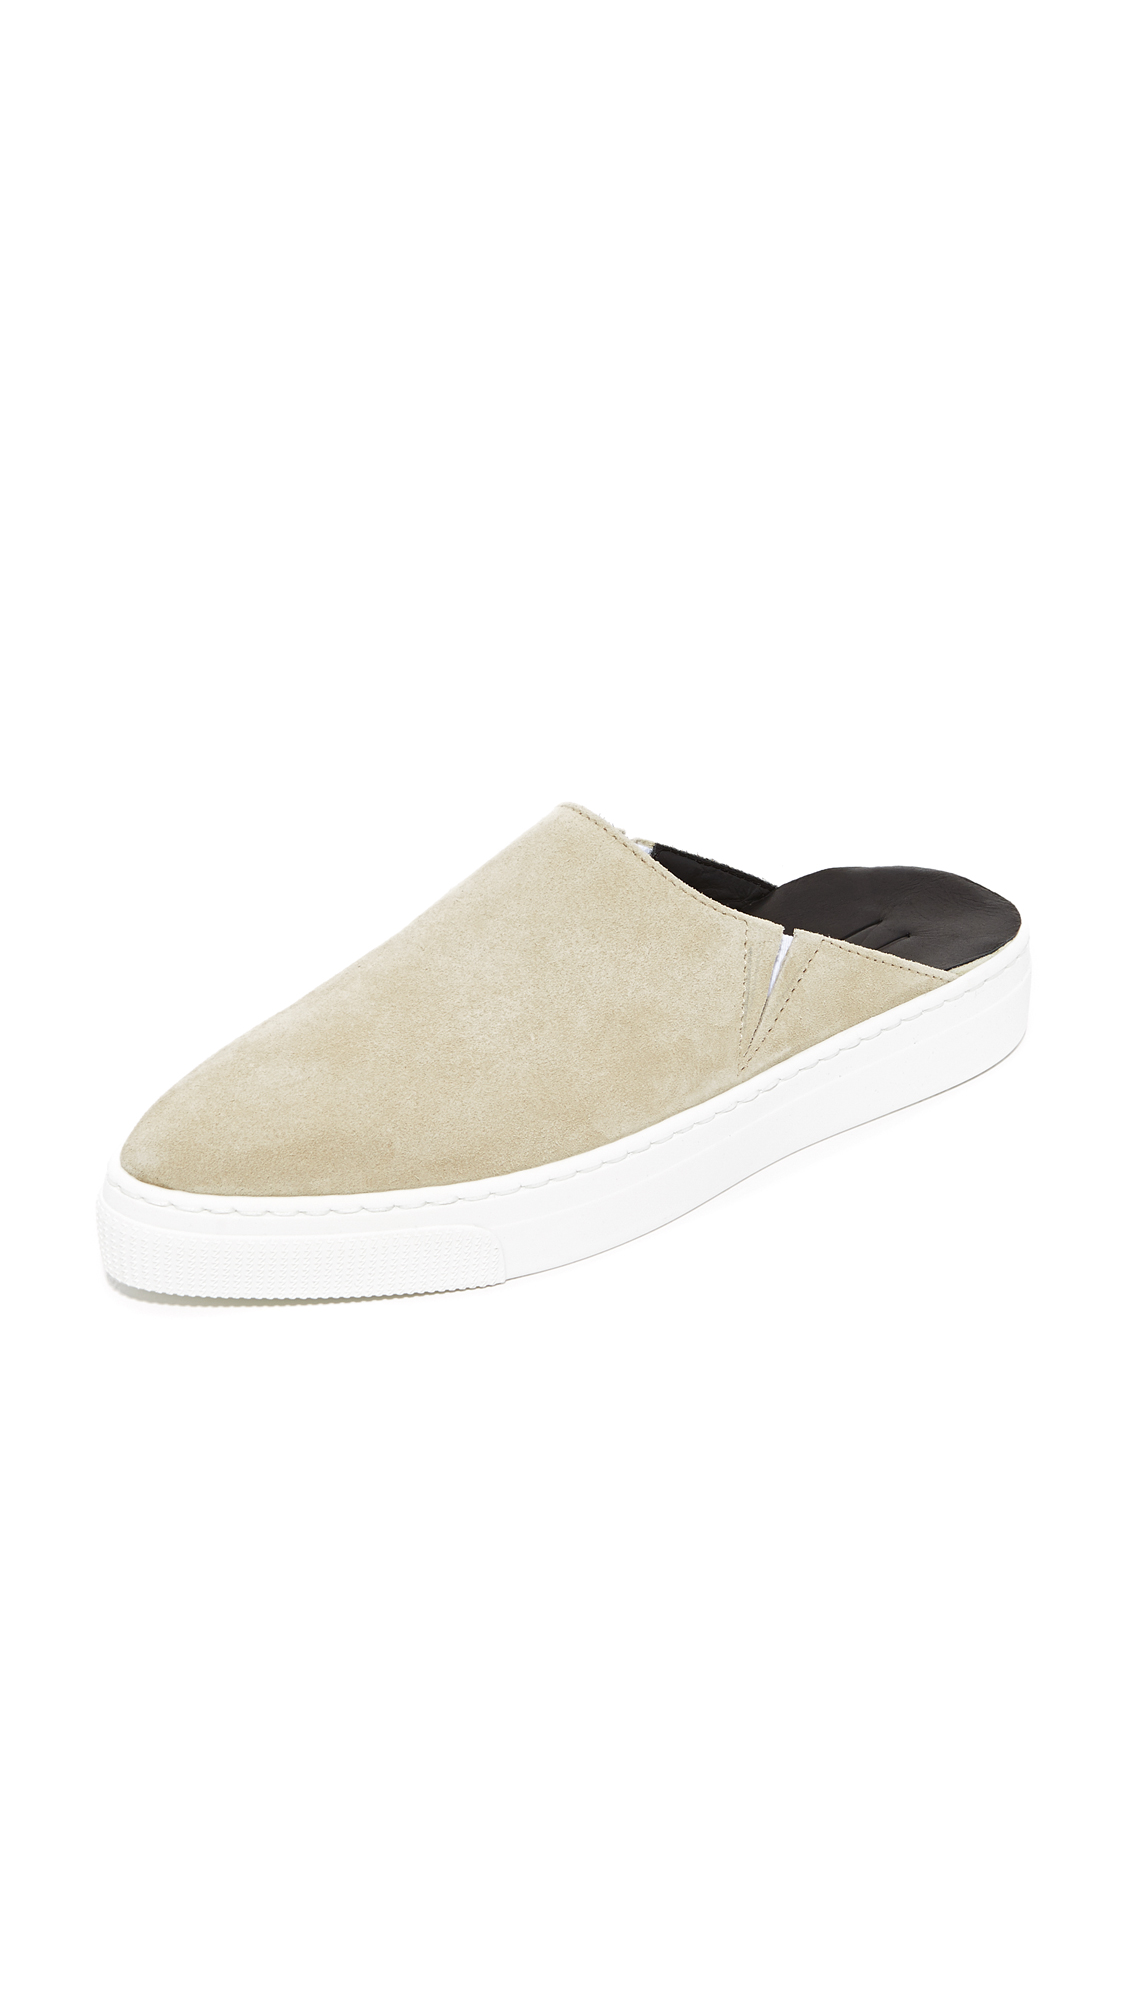 ZCD Montreal Schumy Slide Sneakers - Bianco Crema